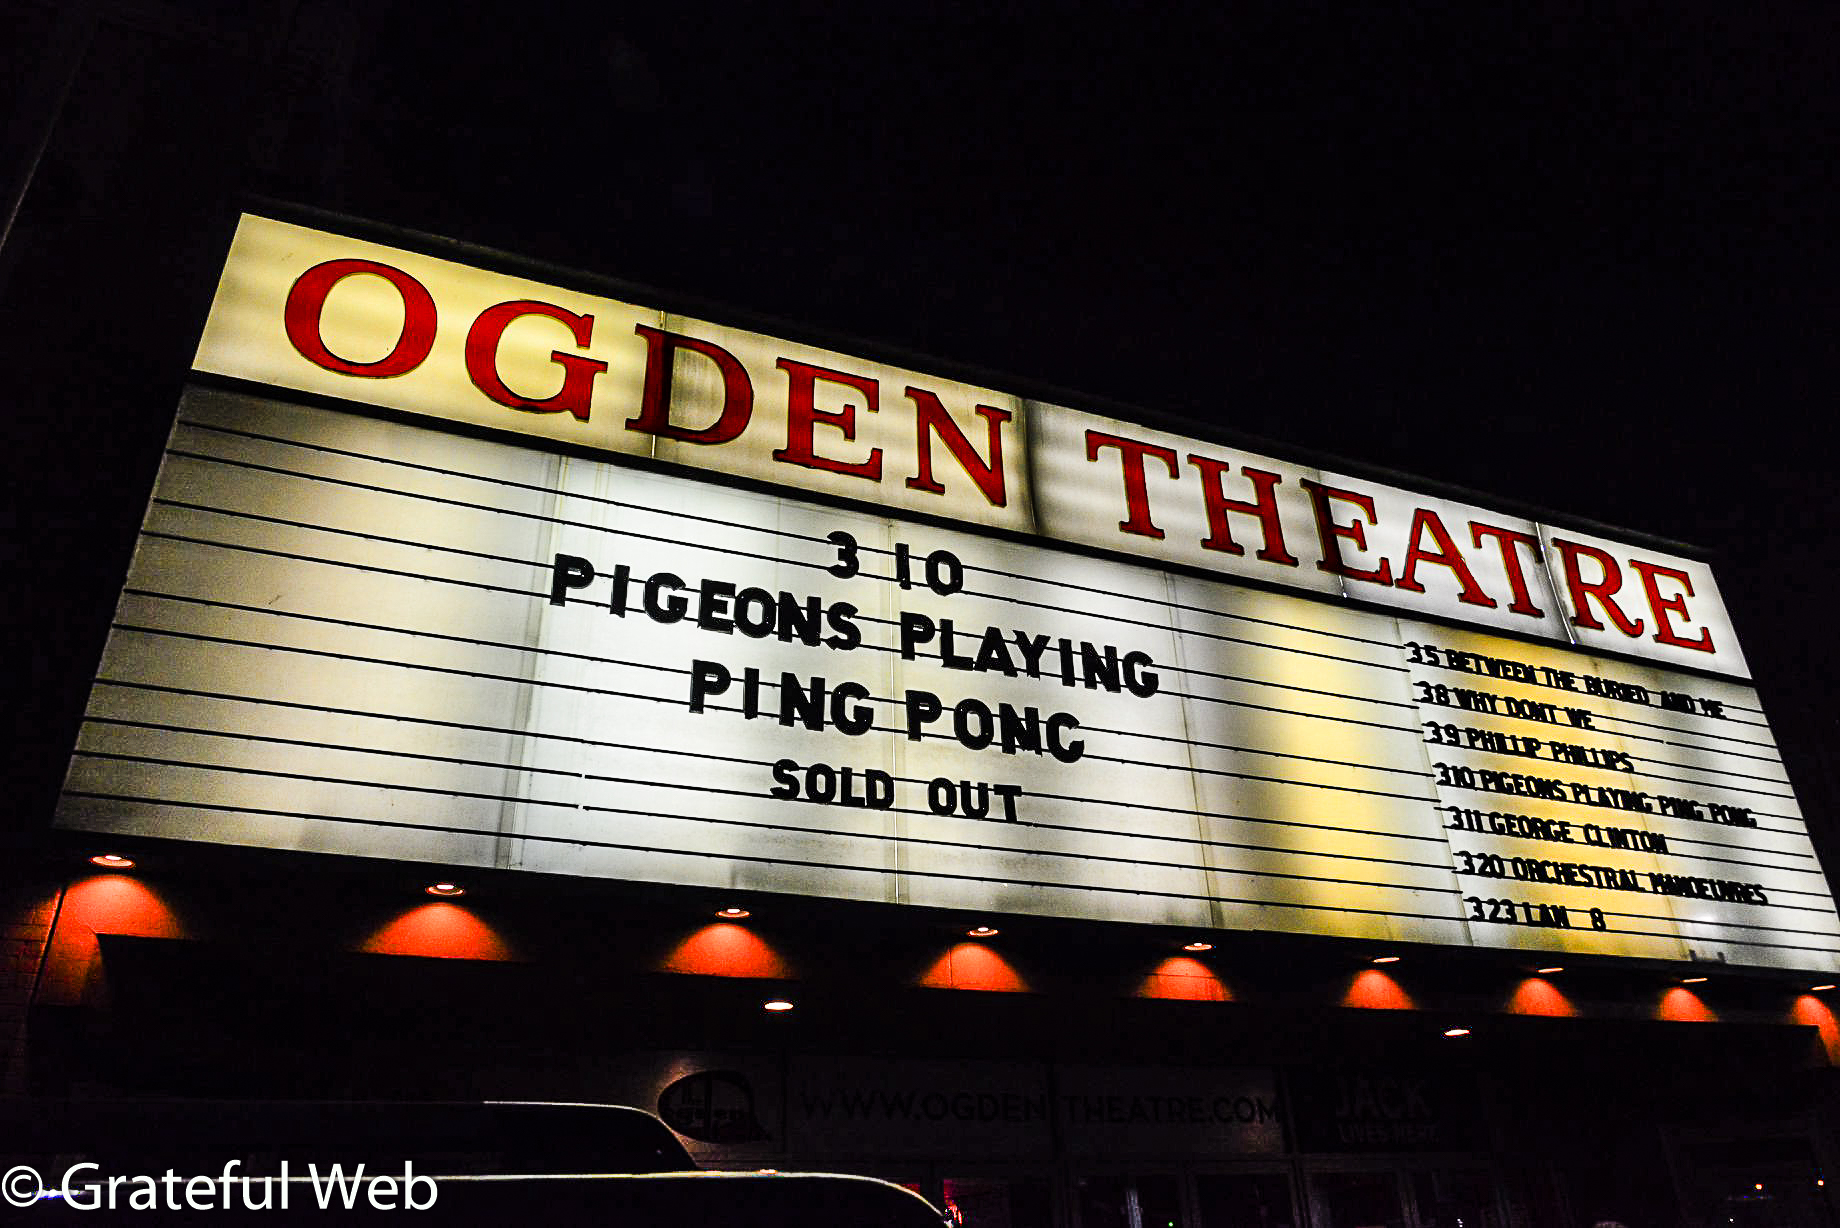 Pigeons Playing Ping Pong sold-out show in Denver!